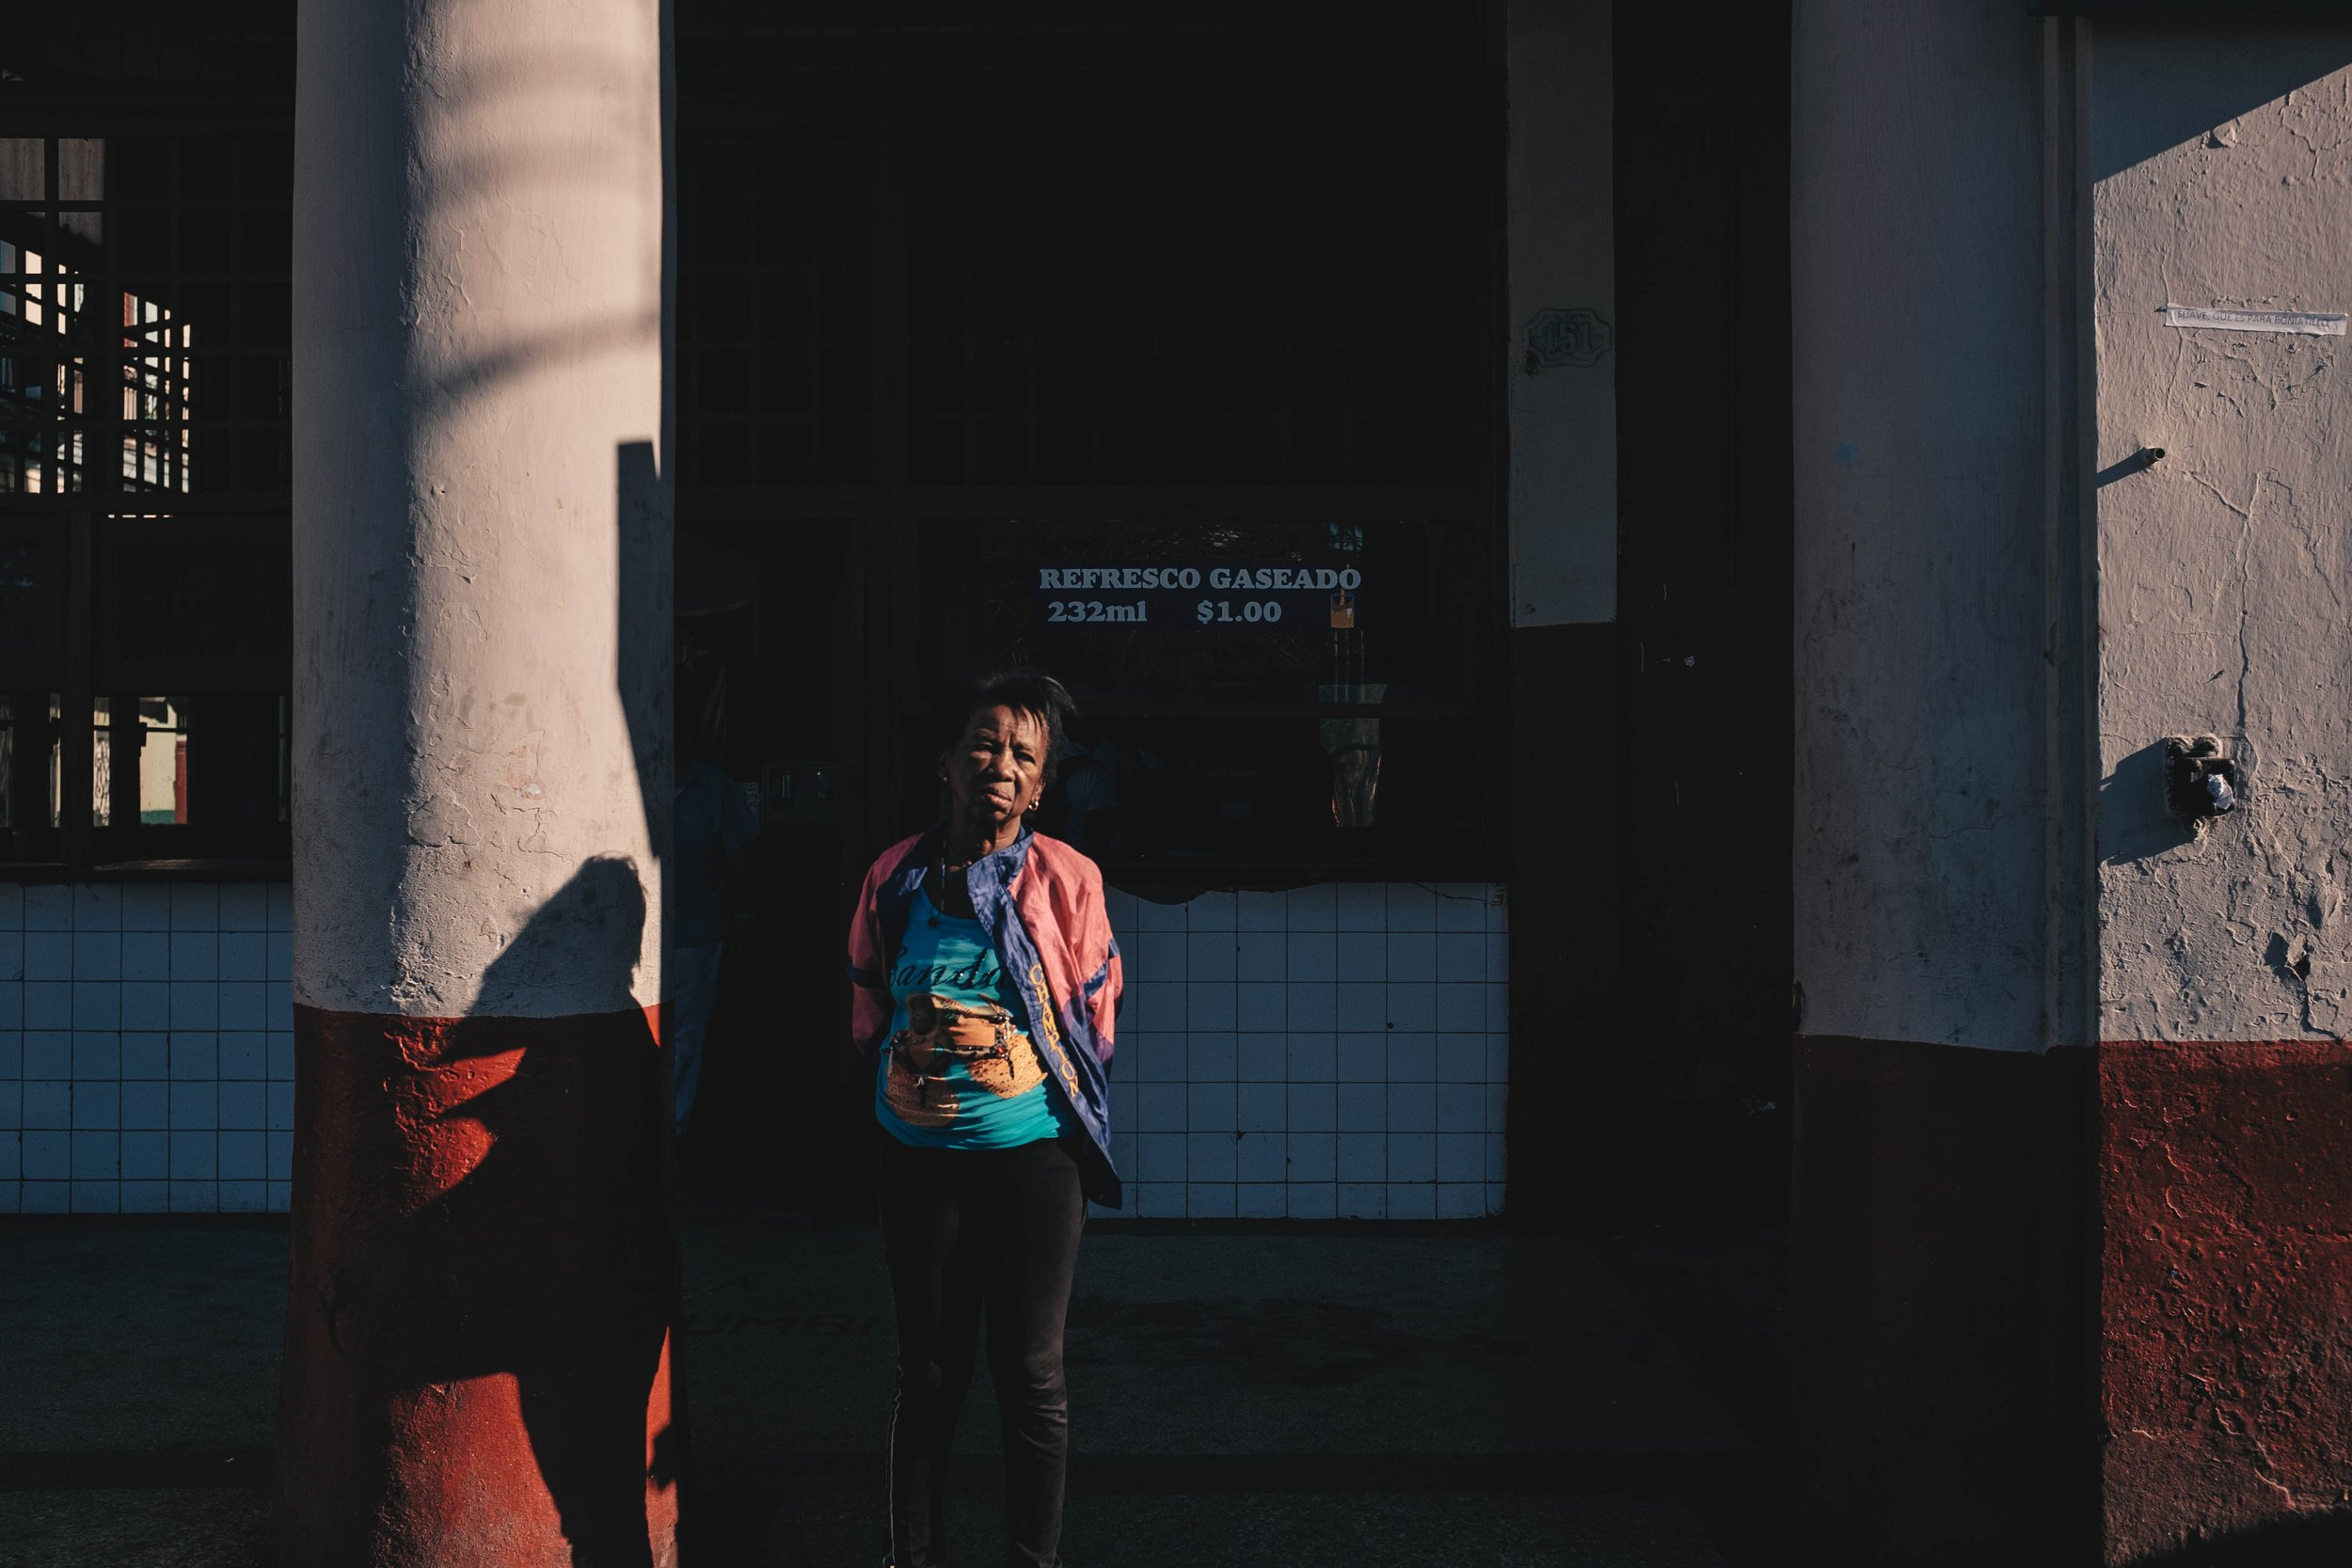 The raw beauty and intimacy of street photography shines through in any photograph taken in Havana